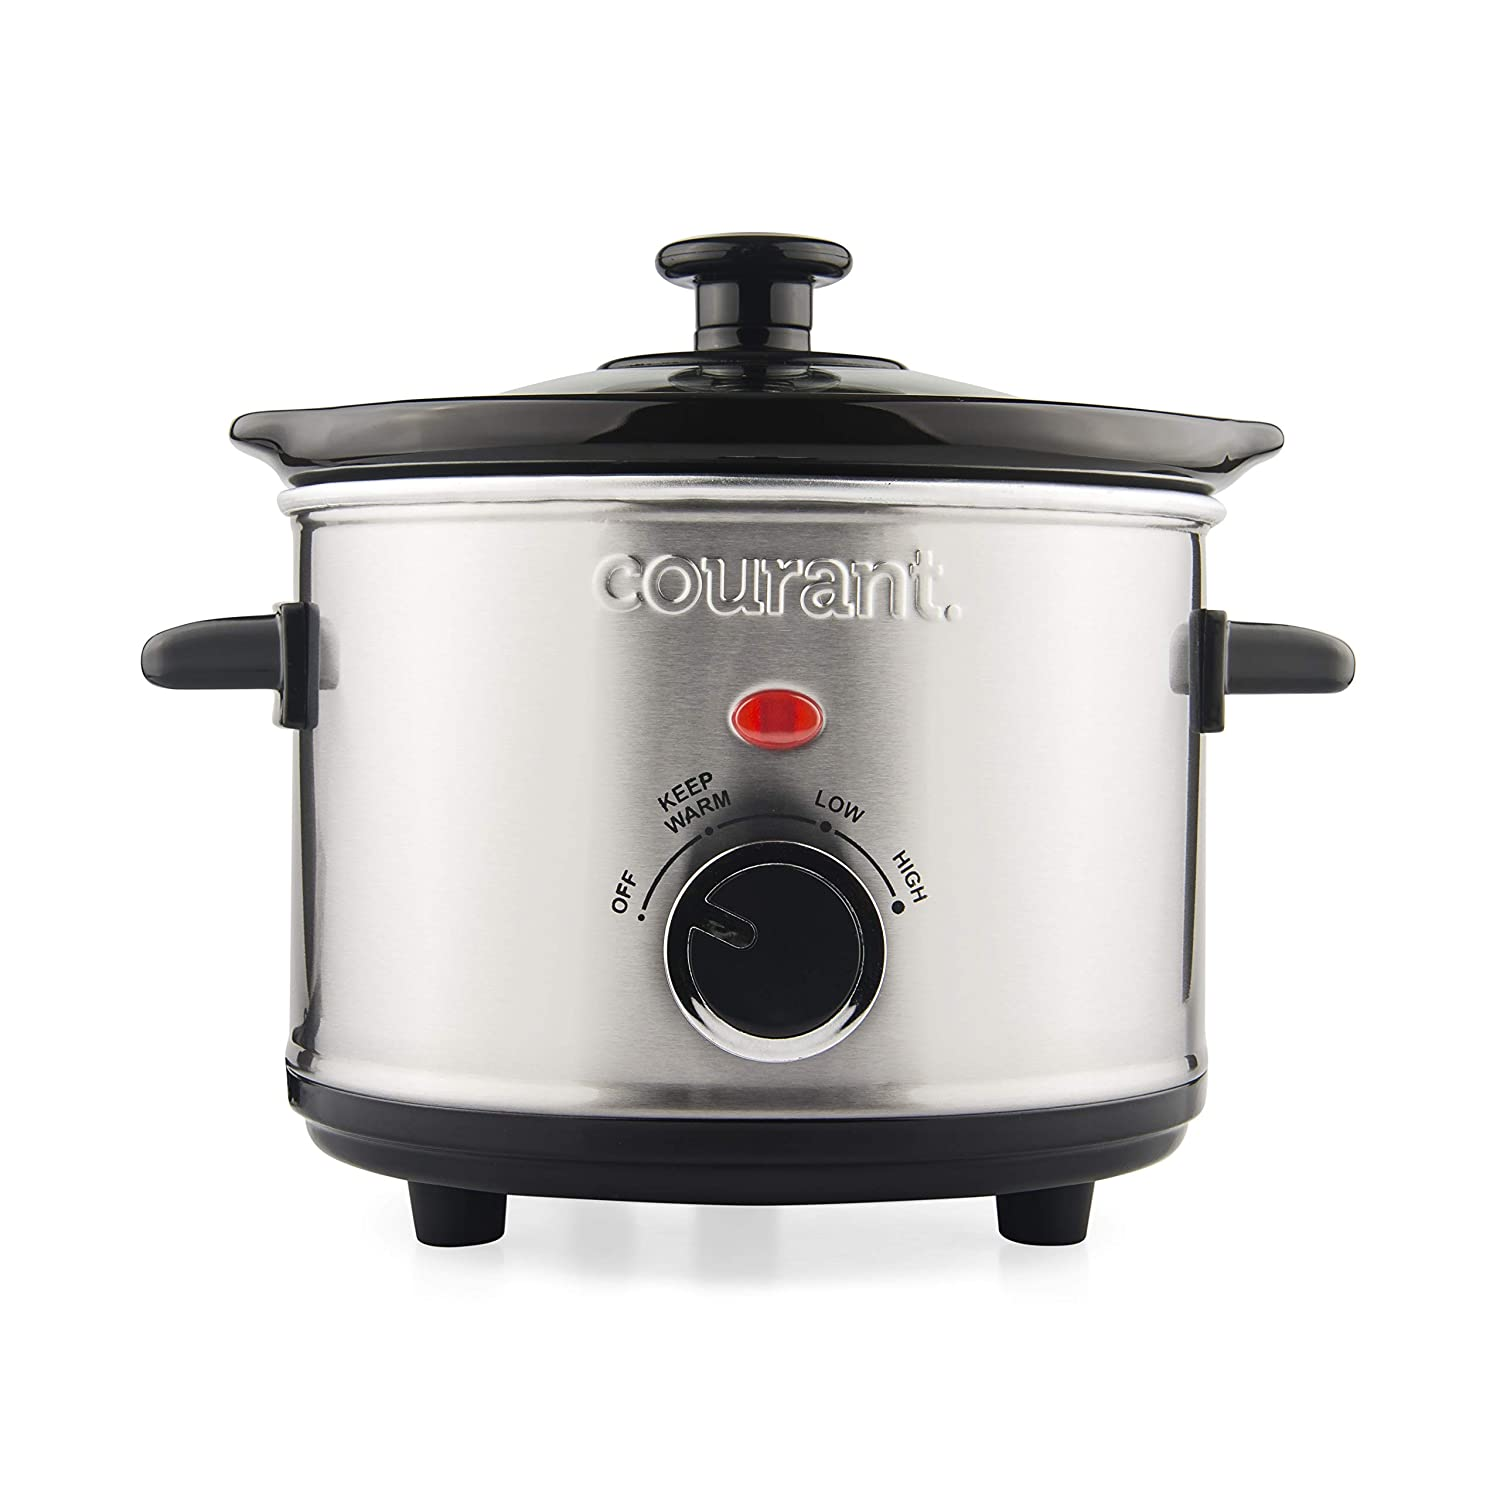 Courant Mini Slow Cooker Crock with Easy Options 15 Quart Dishwasher Safe Pot Stainless Steel